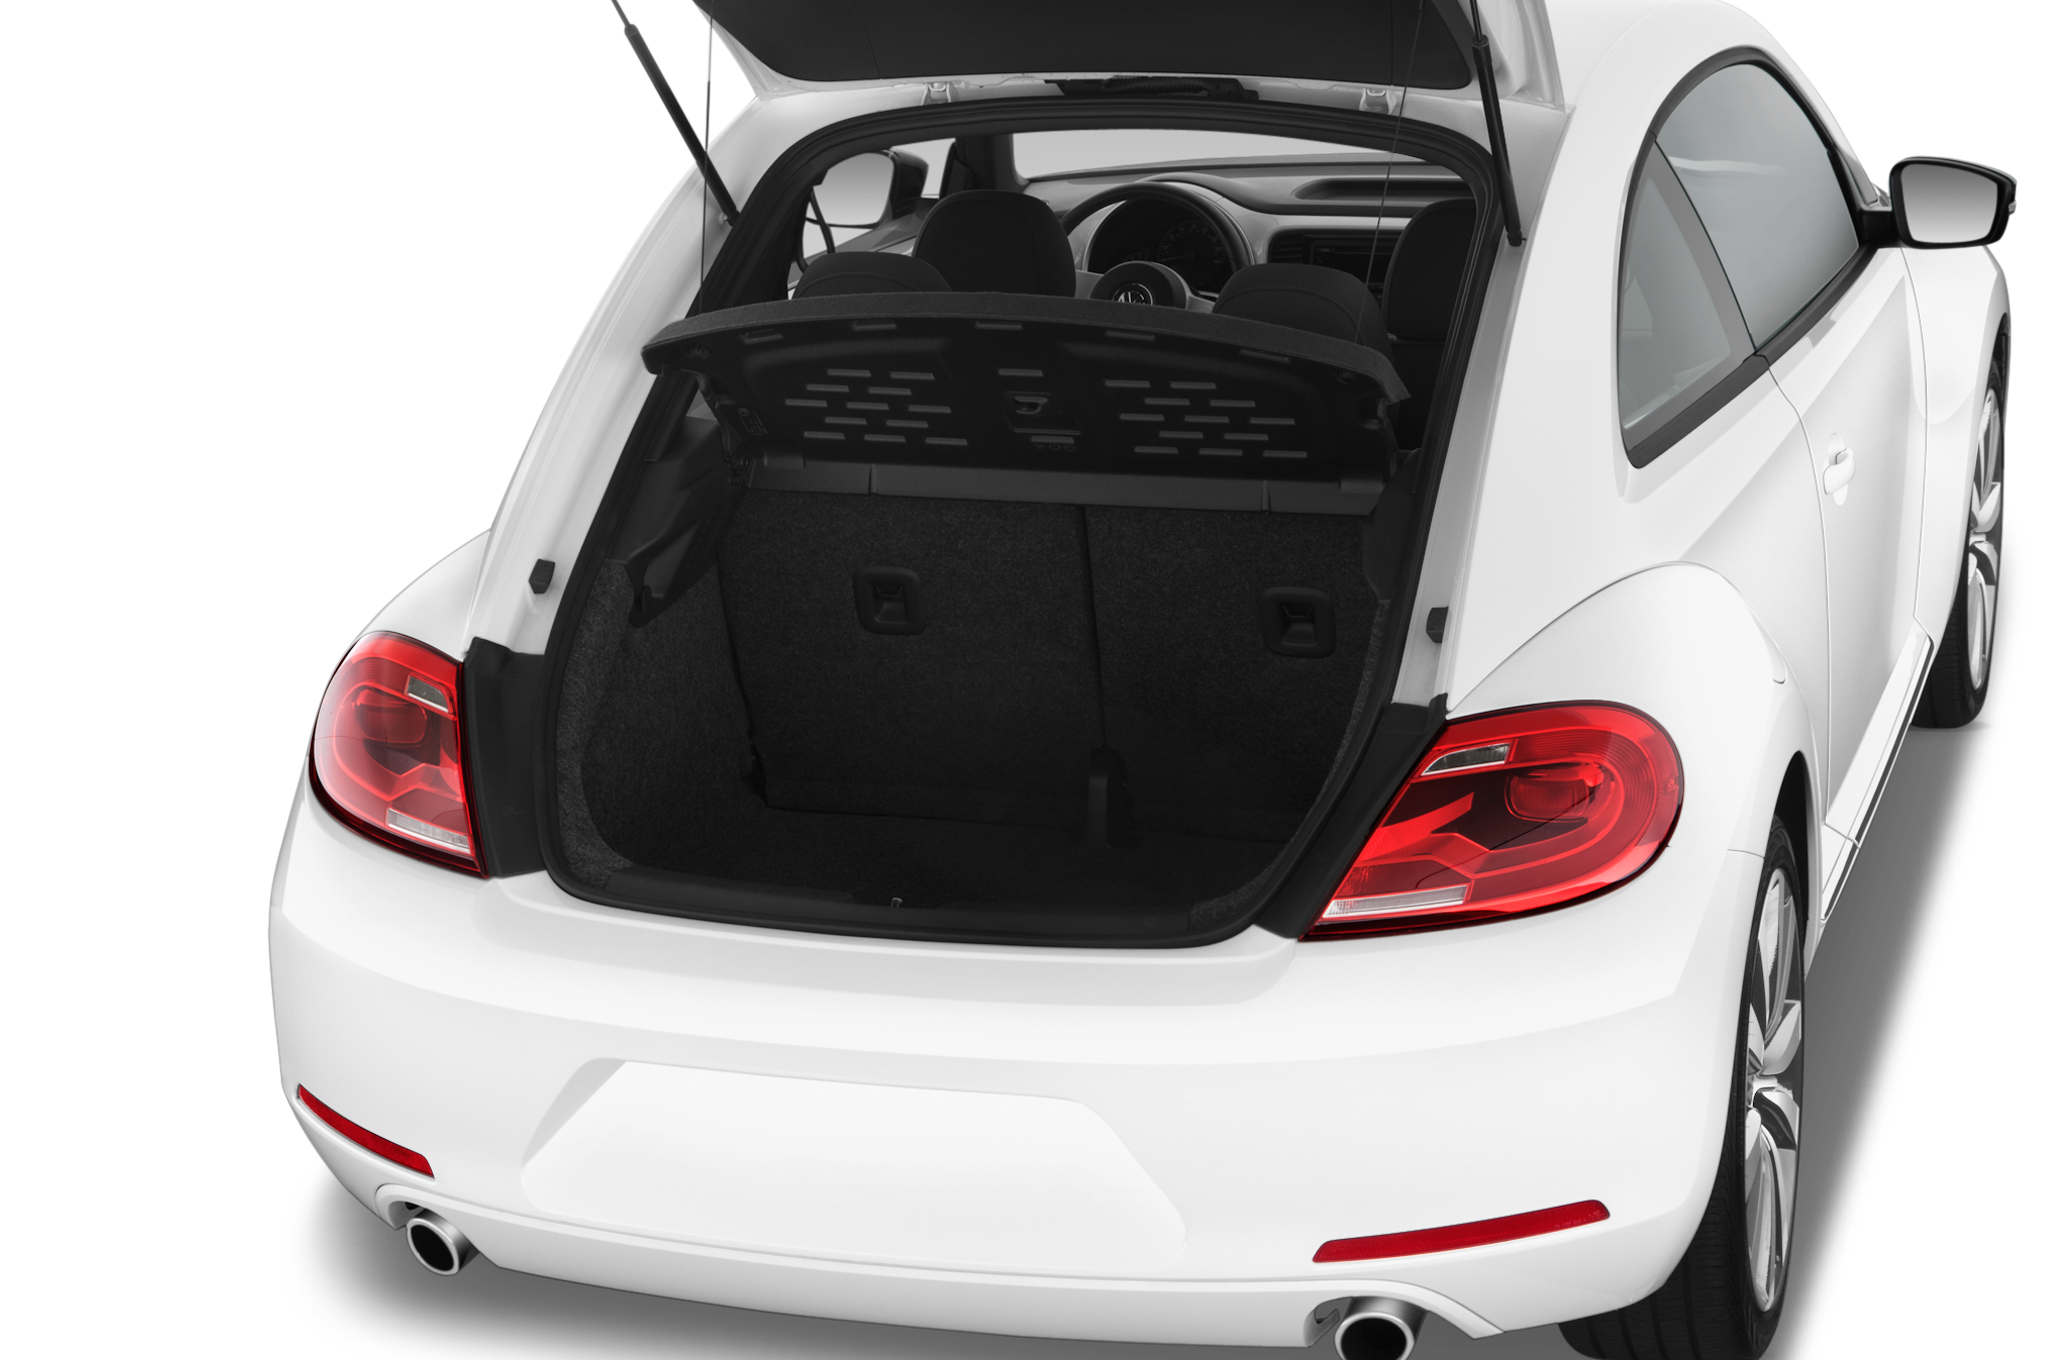 2012 Volkswagen Beetle Turbo First Drive Automobile